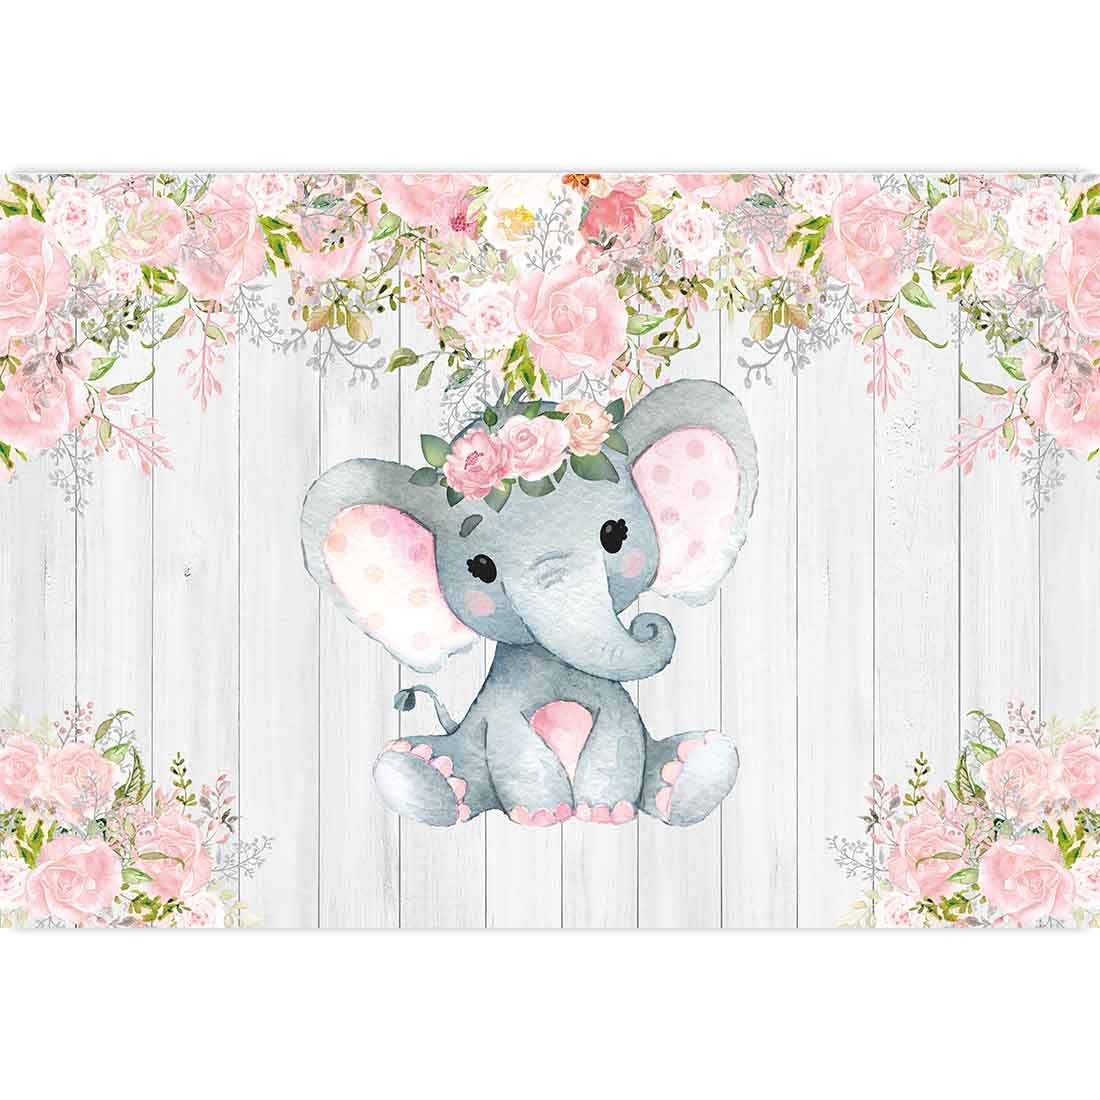 Allenjoy 7x5ft Rustic Floral Elephant Backdrop for Baby Shower Party Pink Flower Wood It's a Girl Banner Birthday Photography Background Cake Table Decoration Photo Booth Studio Props Favors Supplies by Allenjoy